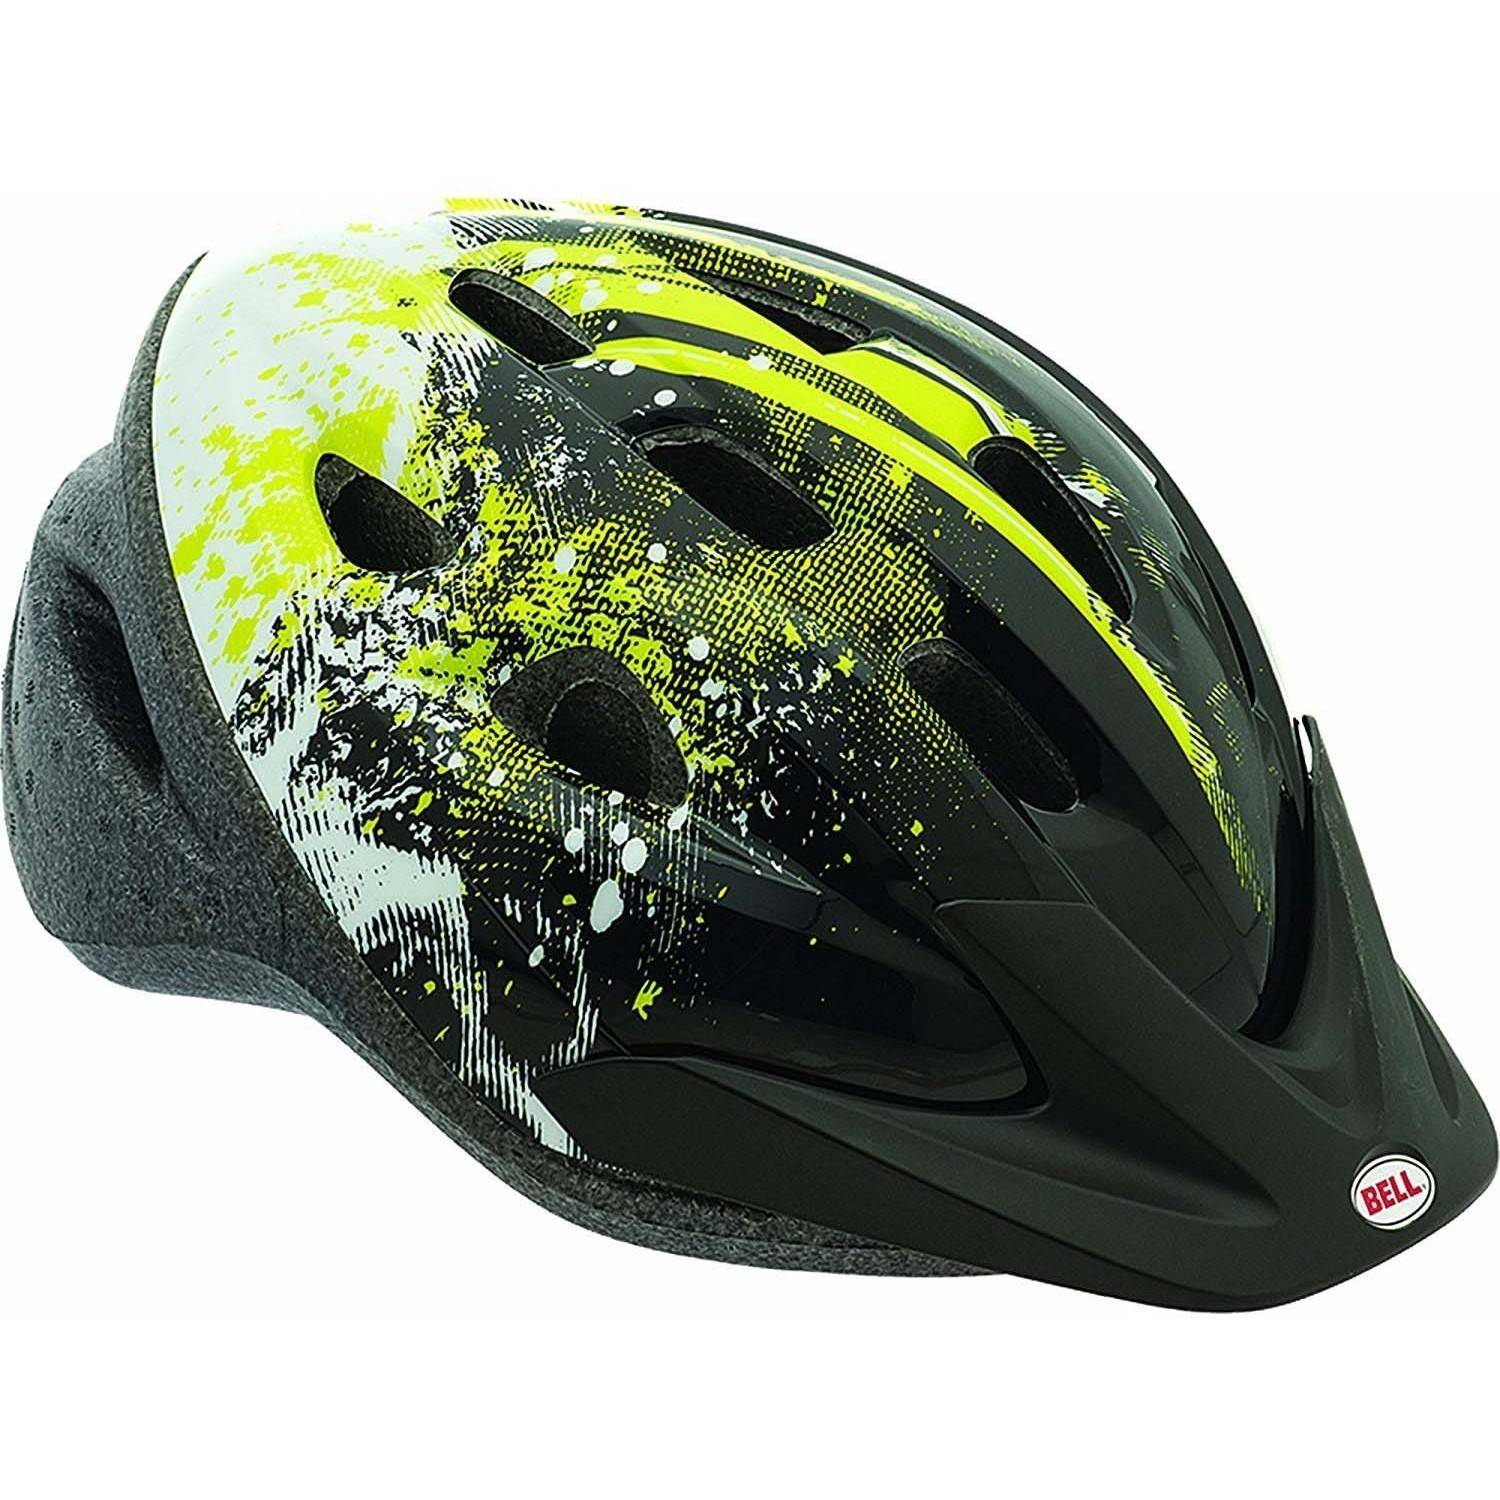 Bell Boys Youth Helmet, 7049692